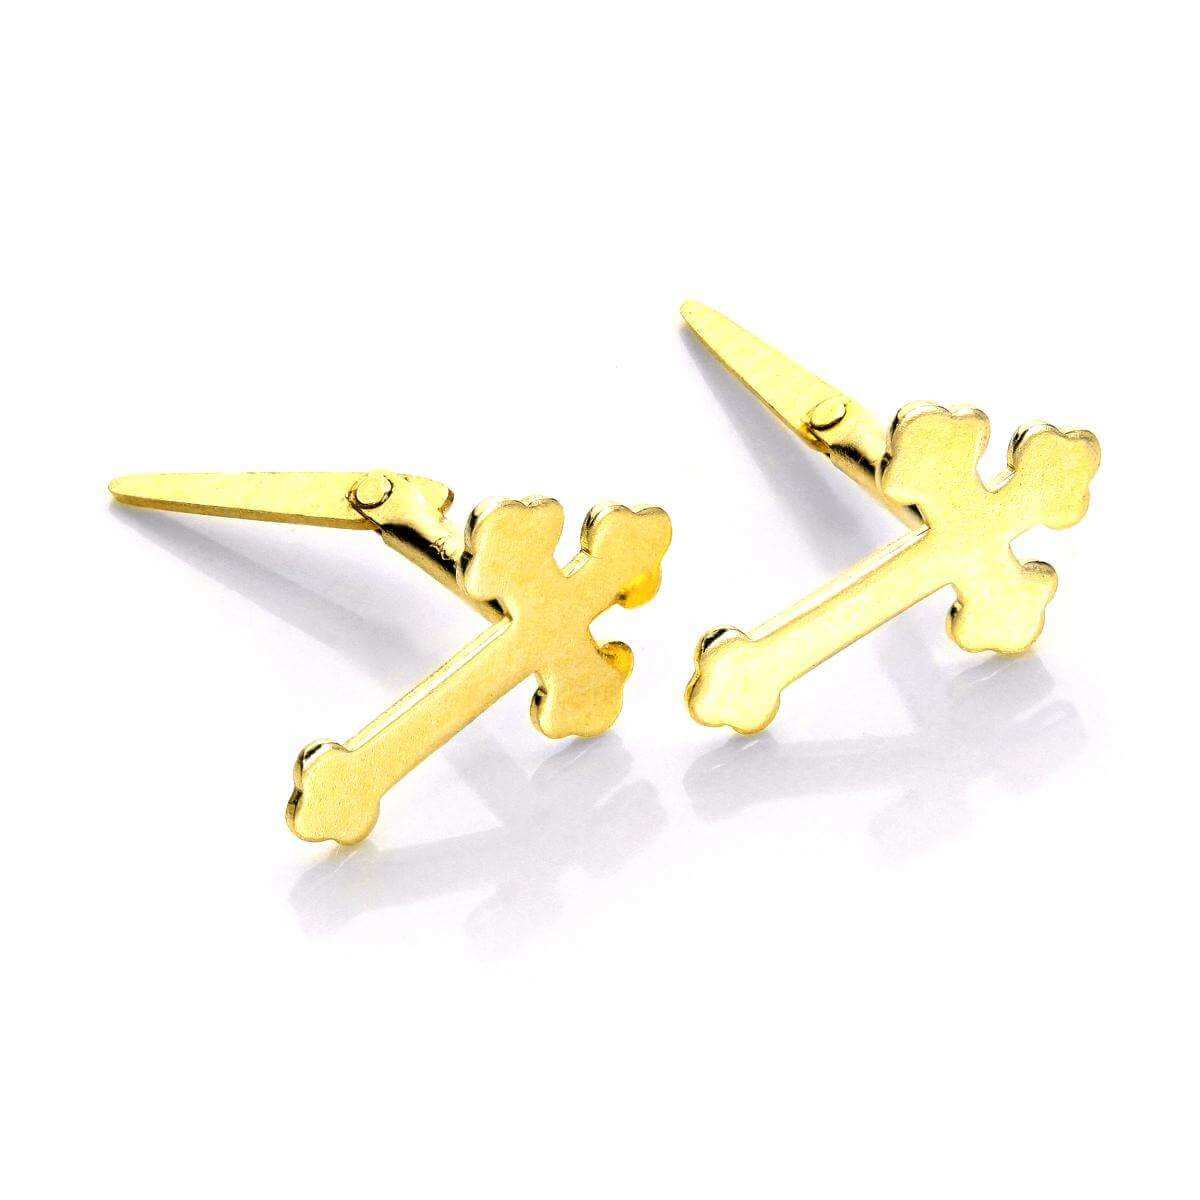 Andralok 9ct Yellow Gold Small Club Cross Stud Earrings